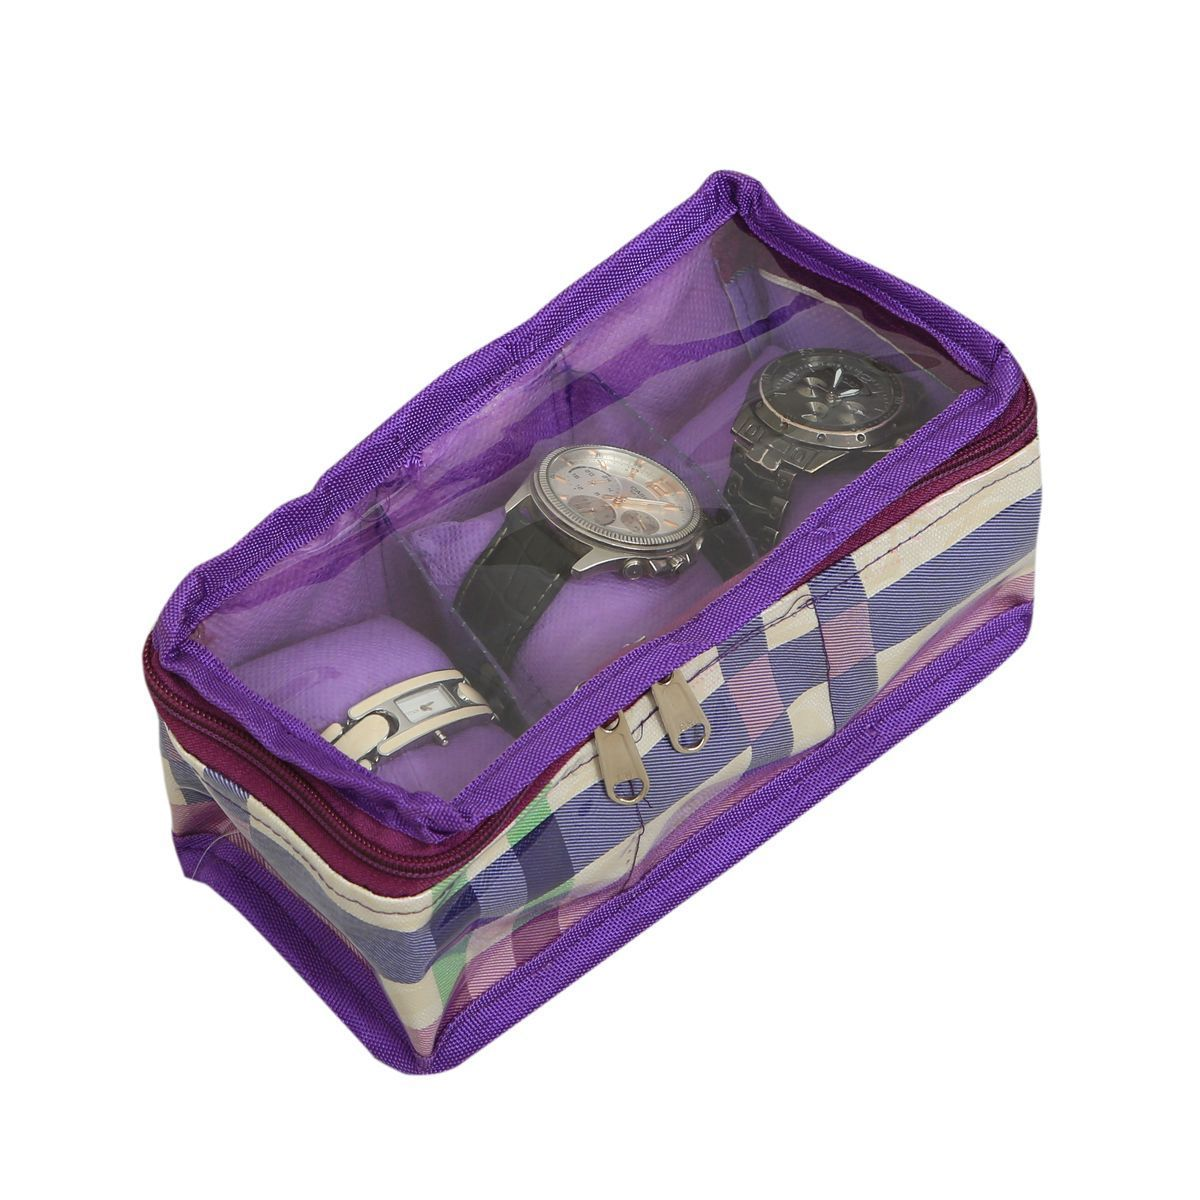 """Kuber Industriesâ""¢ Wrist Watch Case,Watch Cover,Watch Box,Bangle Box In Laminated Imported Fabric (Three Roll) KU153 """